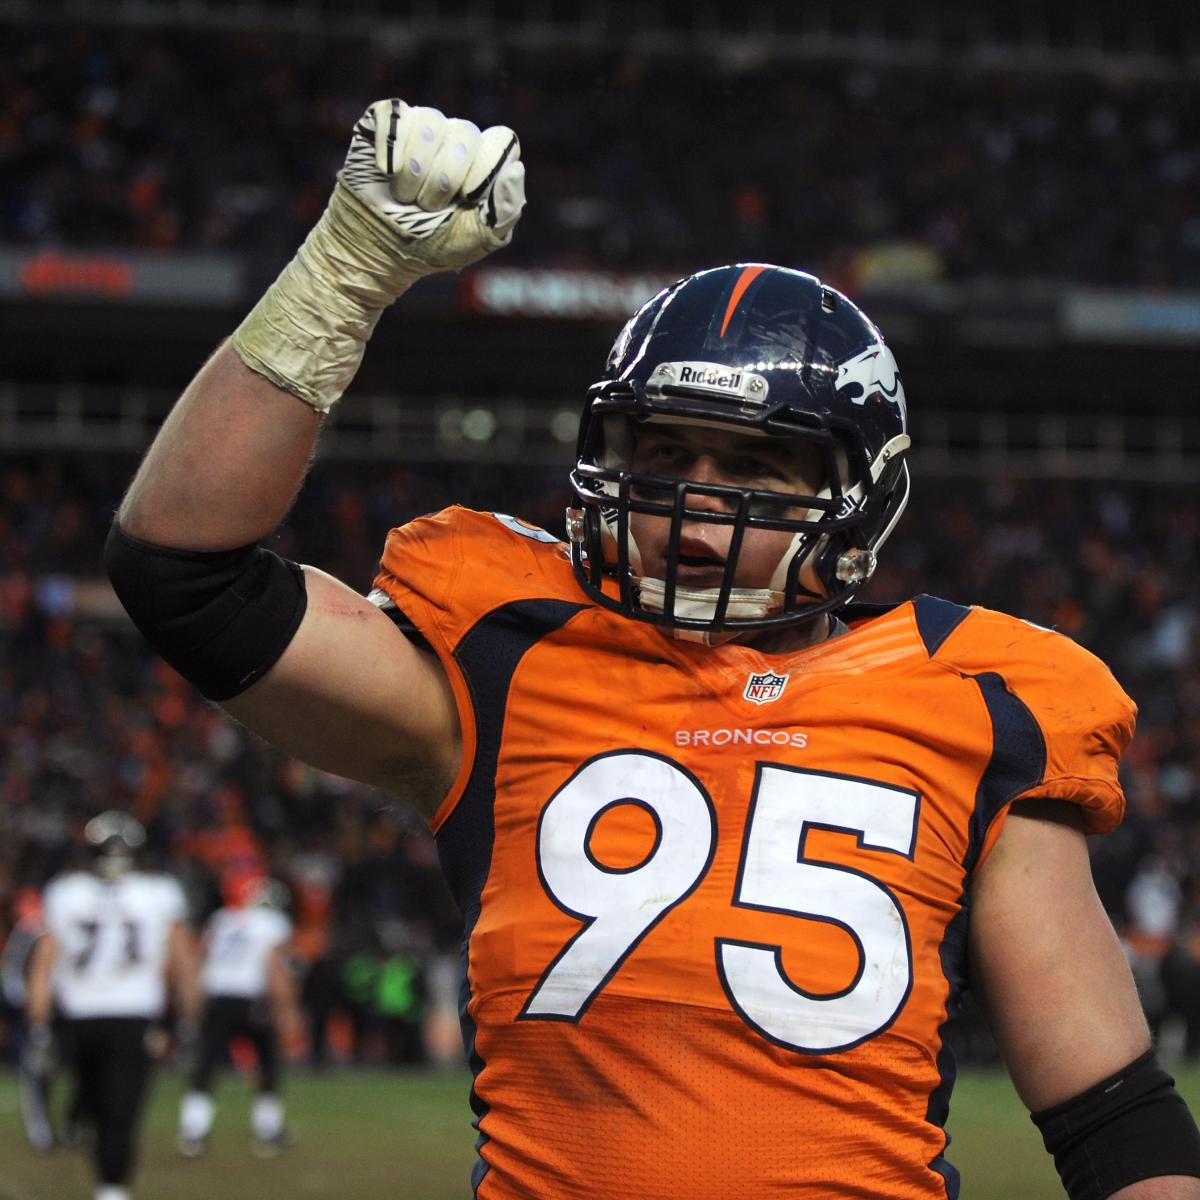 Updates On Broncos DE Derek Wolfe After Suffering Seizure